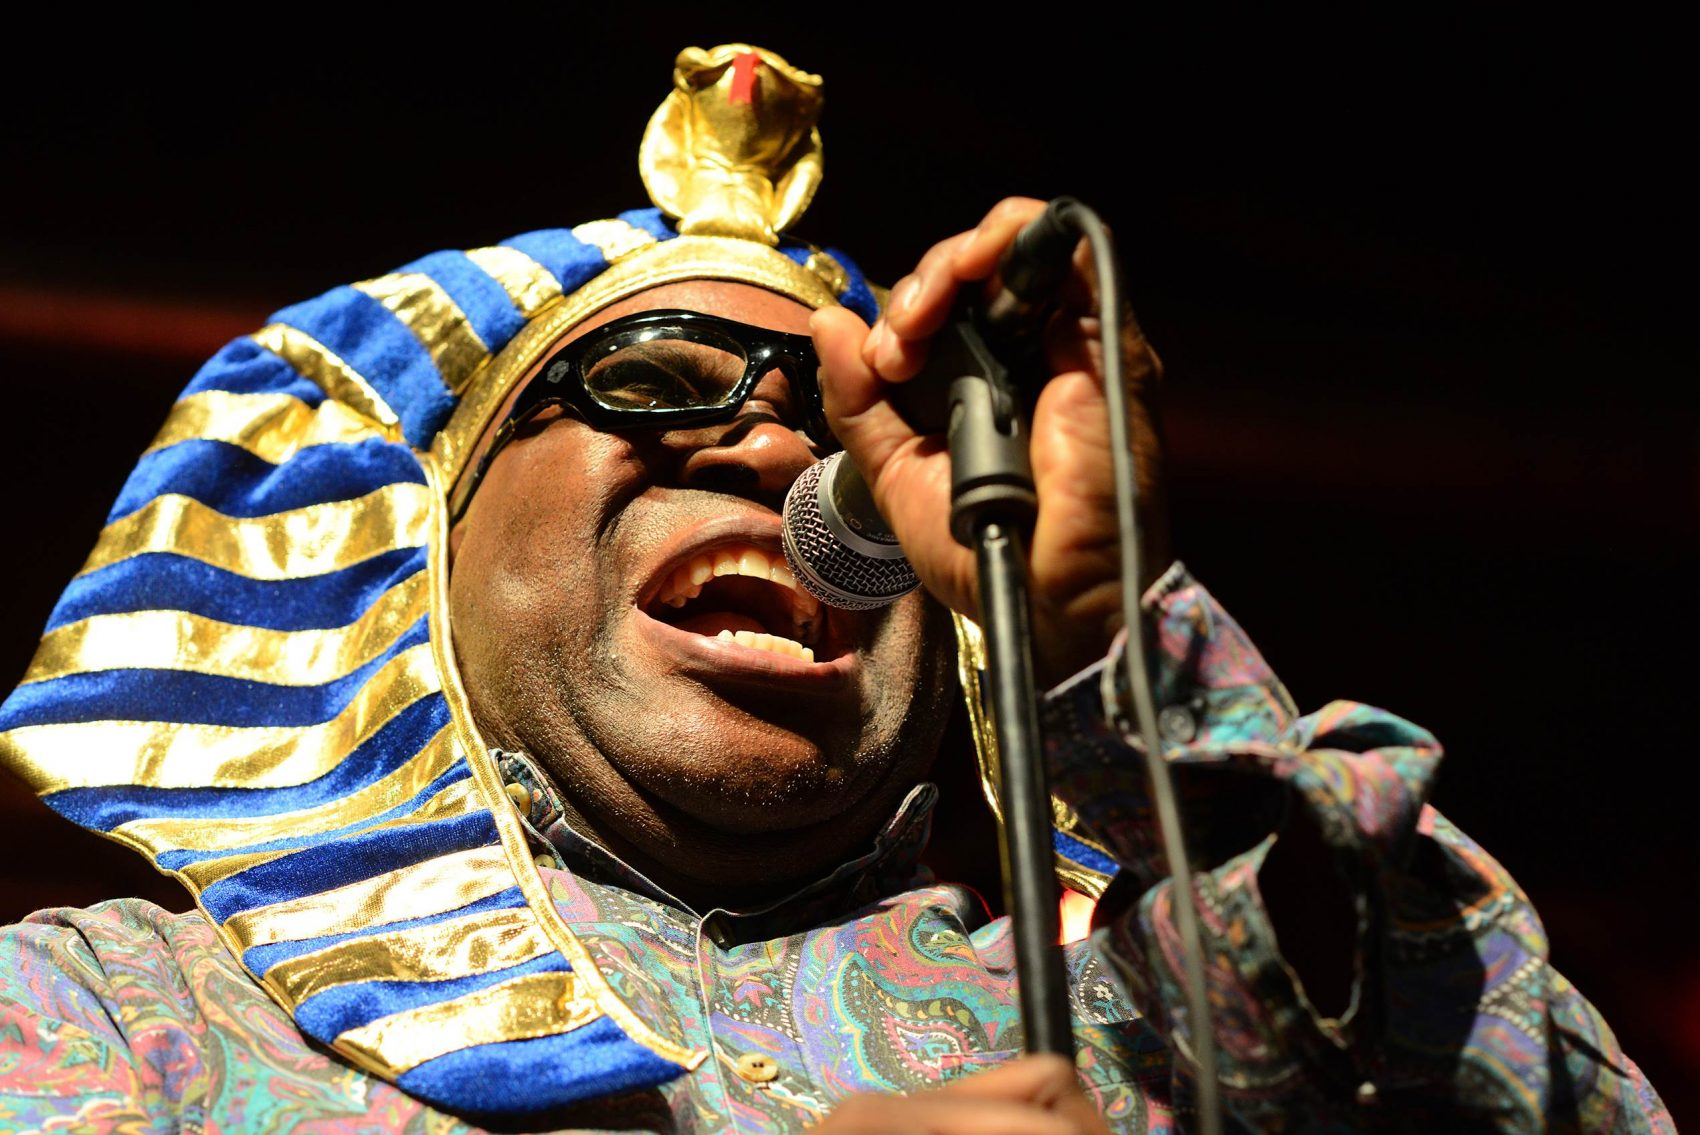 BARRENCE WHITFIELD - Sun. July 4 - Noon